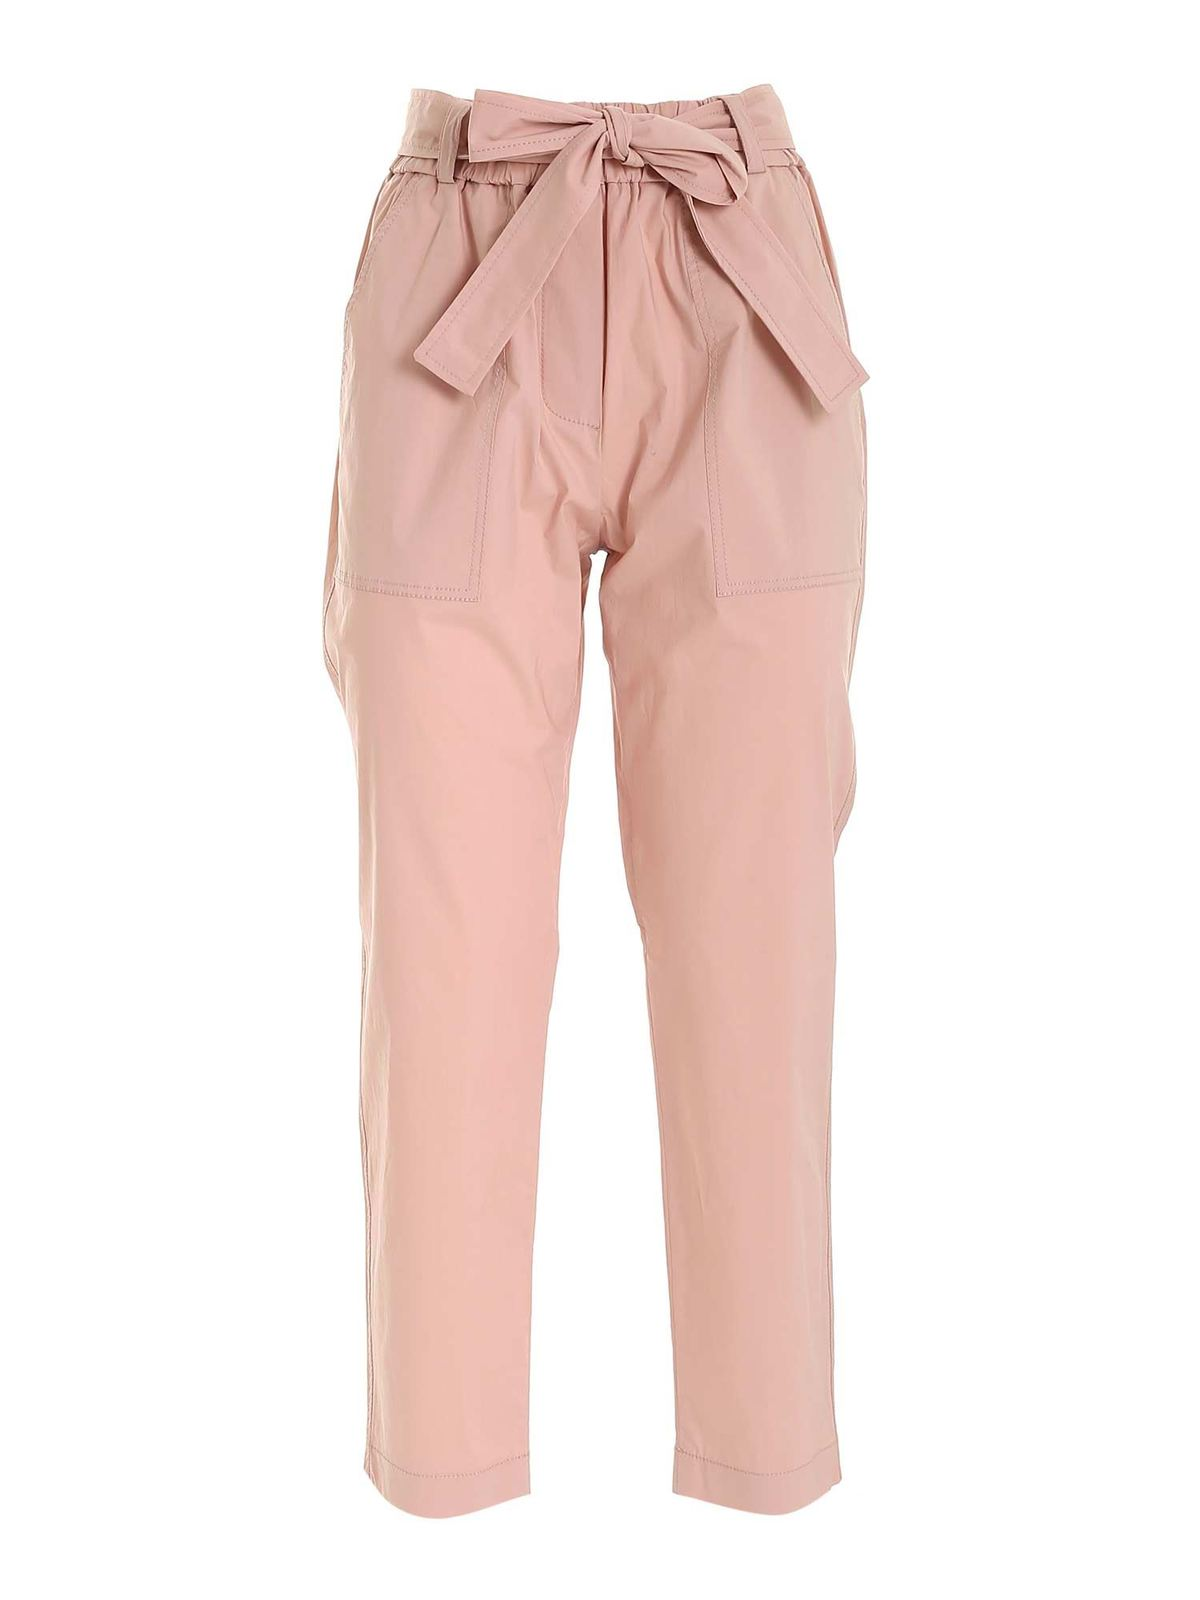 Le Tricot Perugia SASH PANTS IN PINK